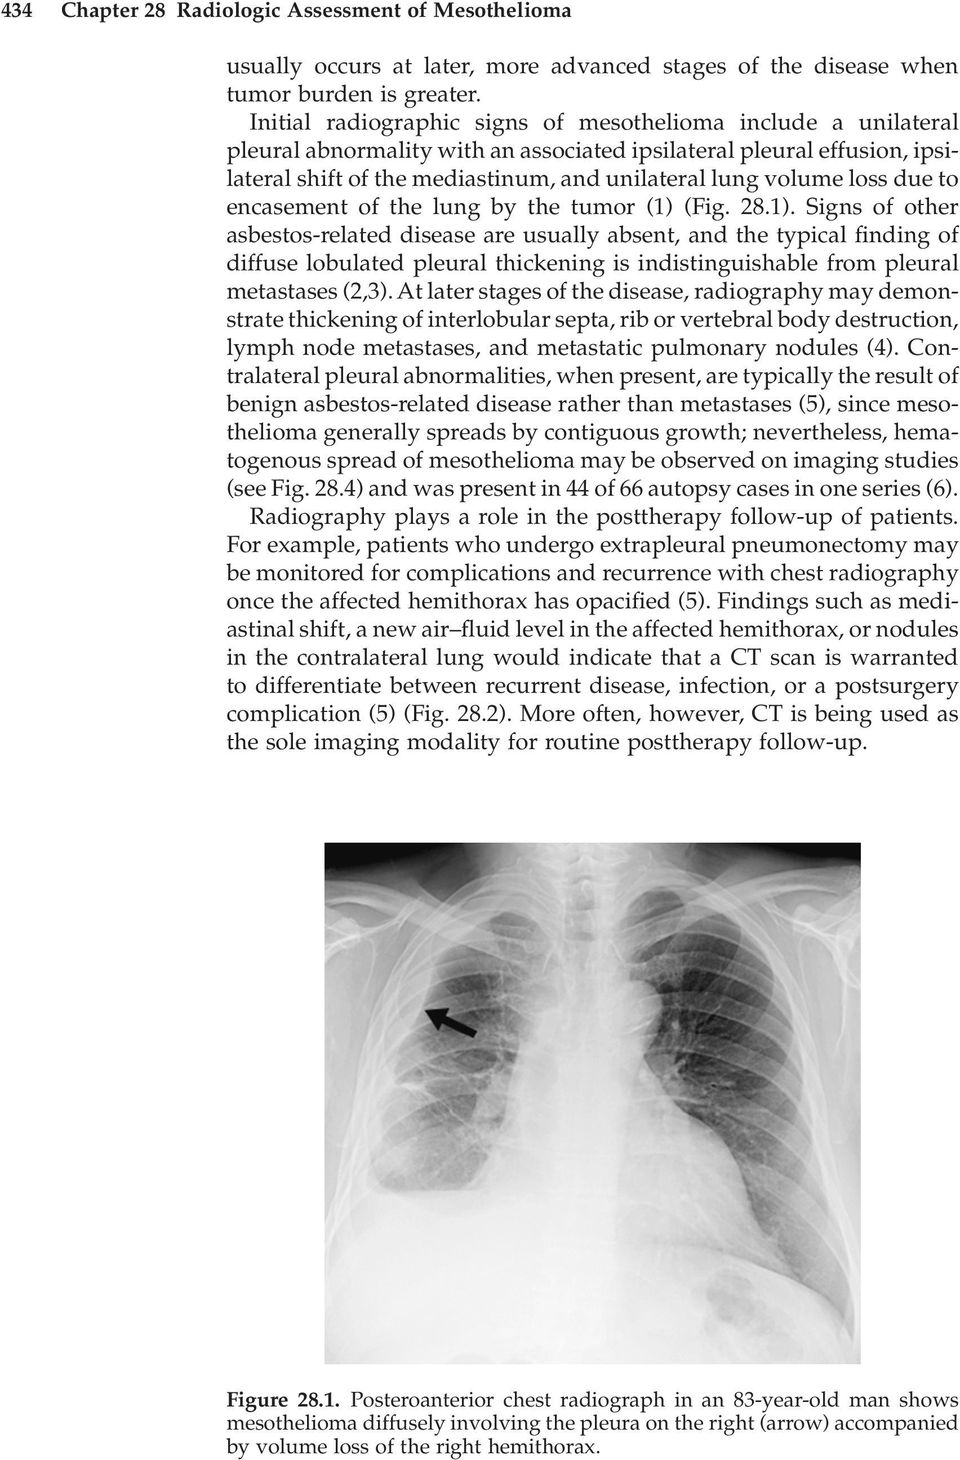 loss due to encasement of the lung by the tumor (1)